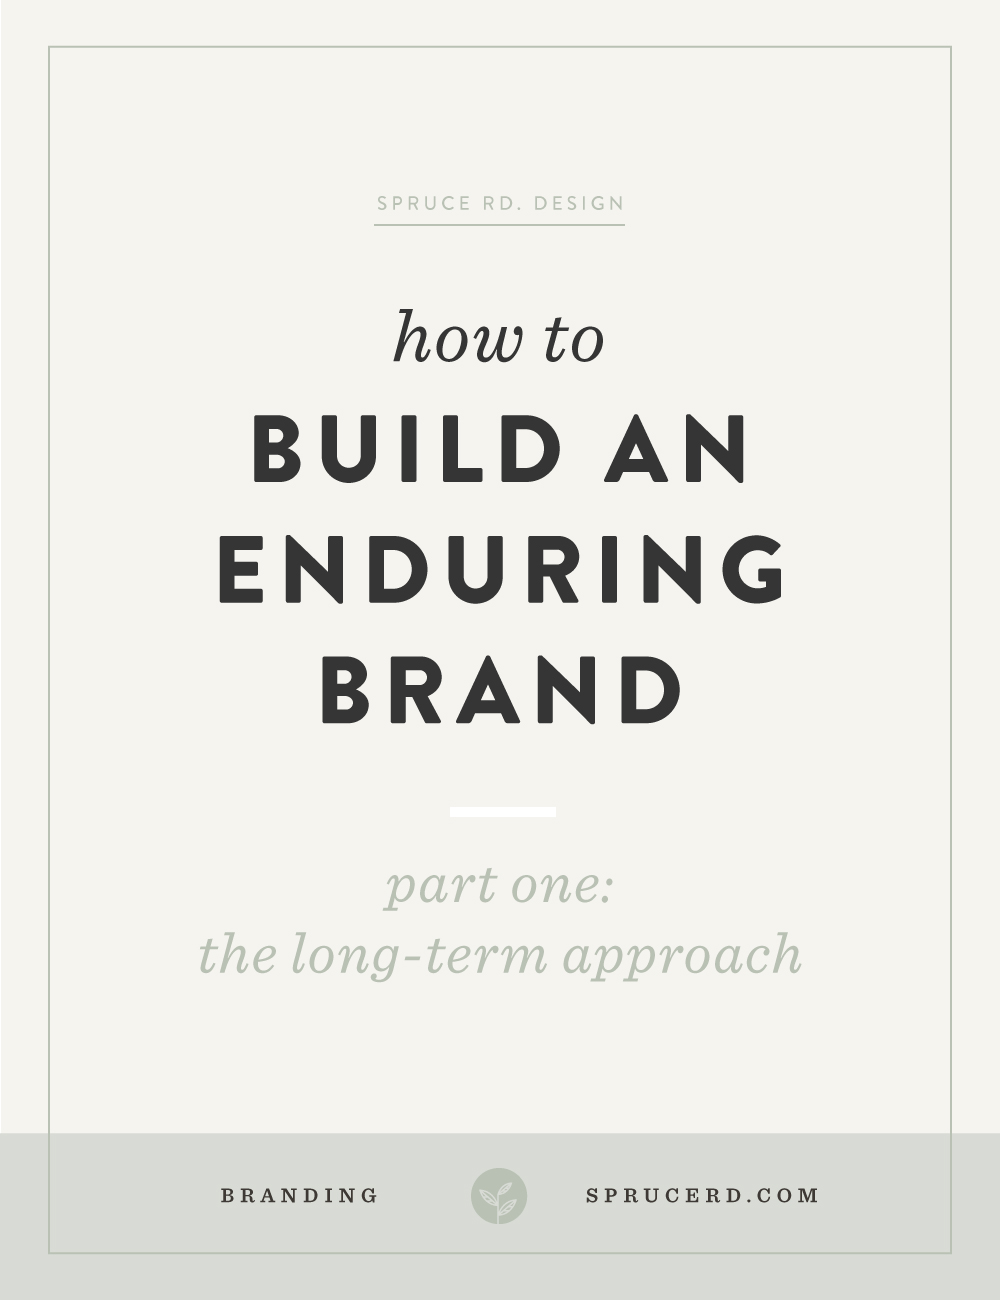 How to build an enduring brand: part one | Spruce Rd. | A long term approach to your business is the only way to build an enduring brand.